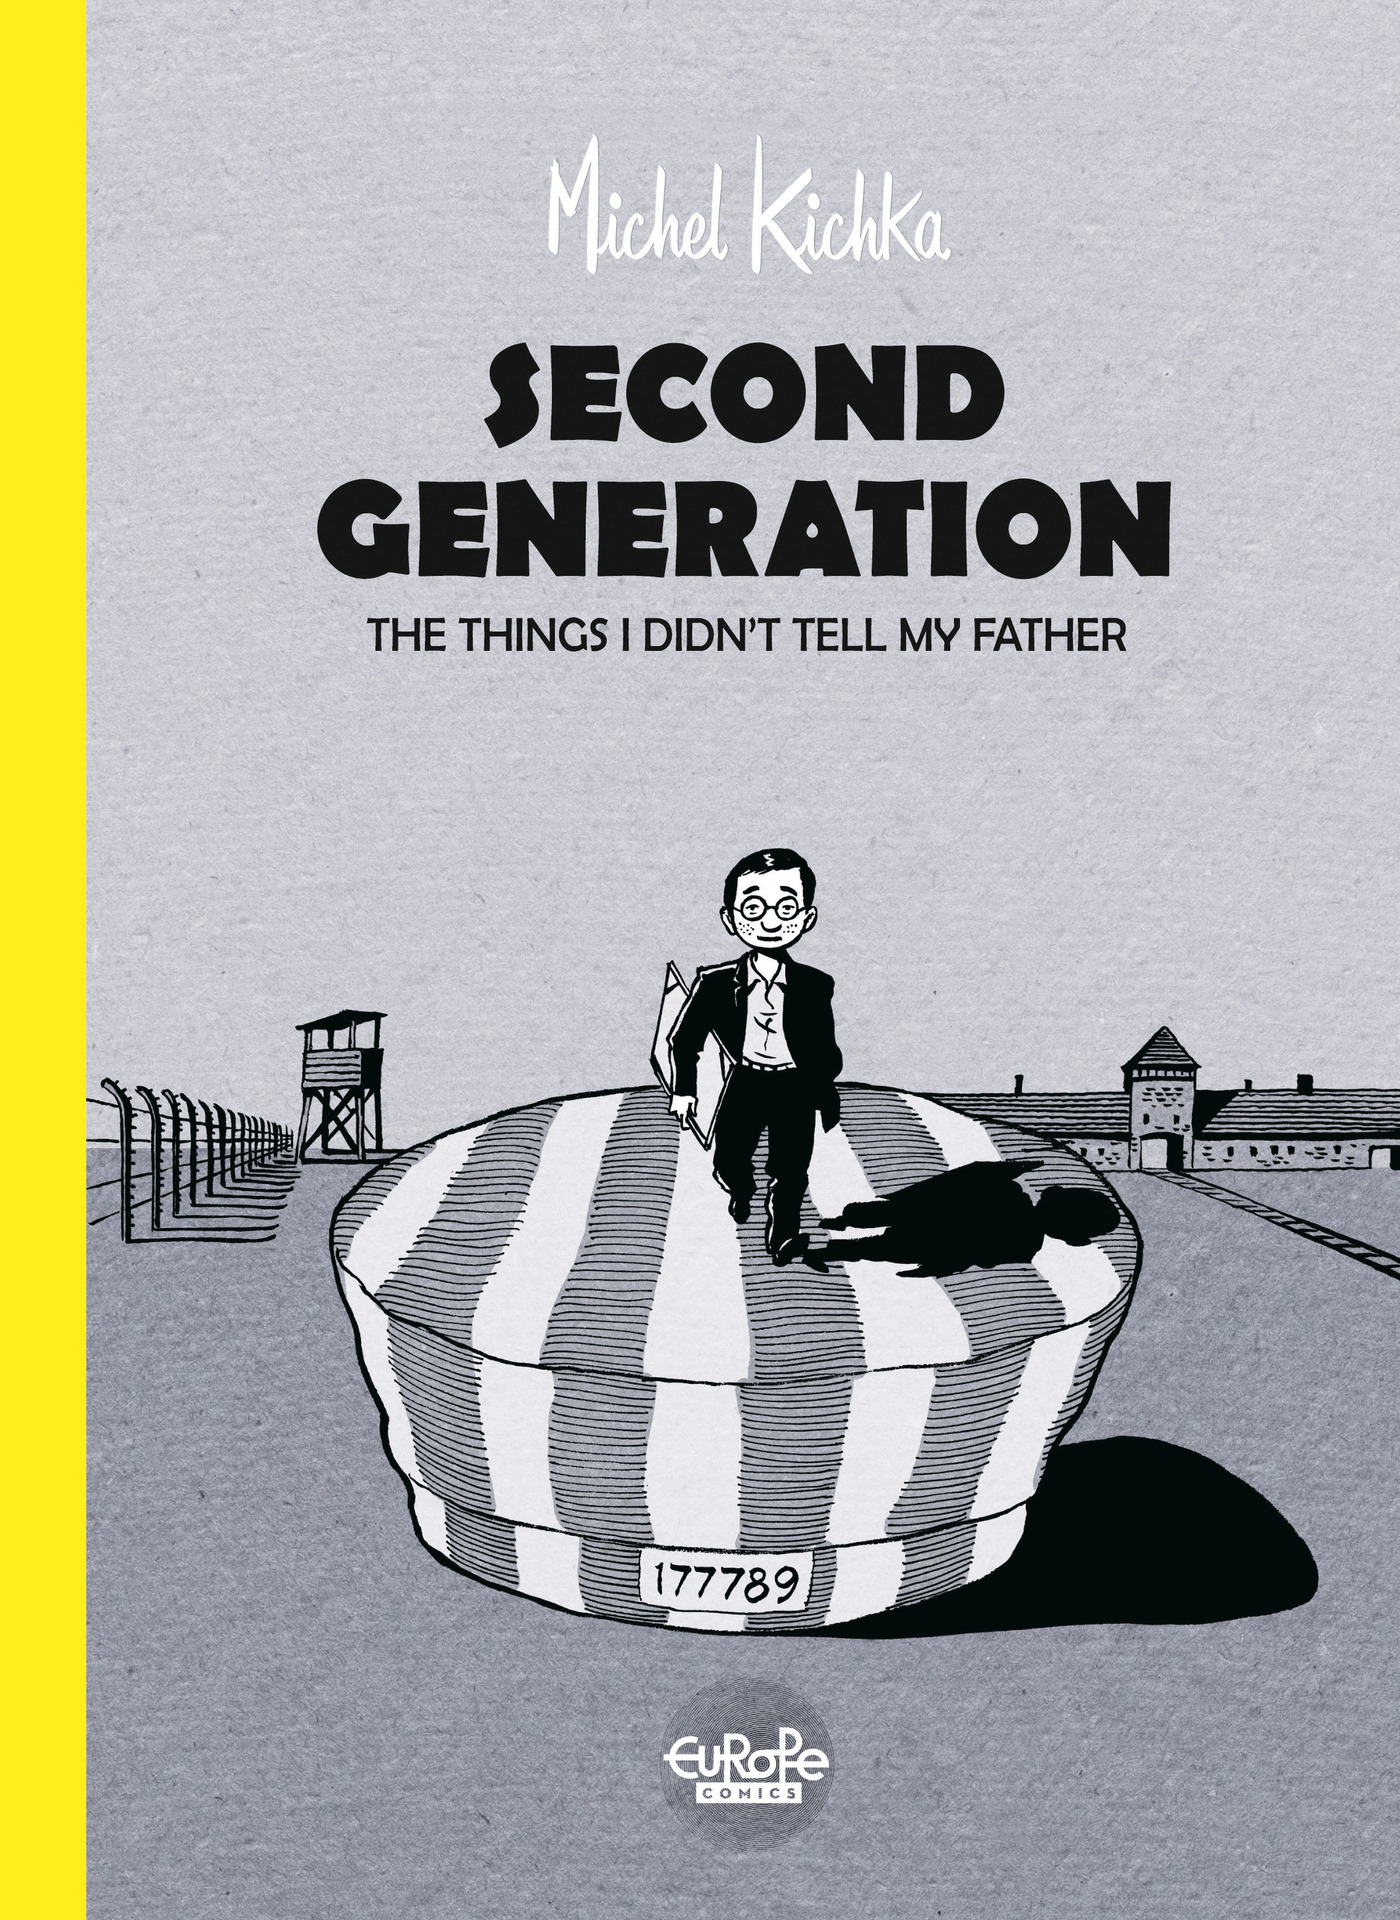 Read online Second Generation - The Things I Didn't Tell My Father comic -  Issue # Full - 1